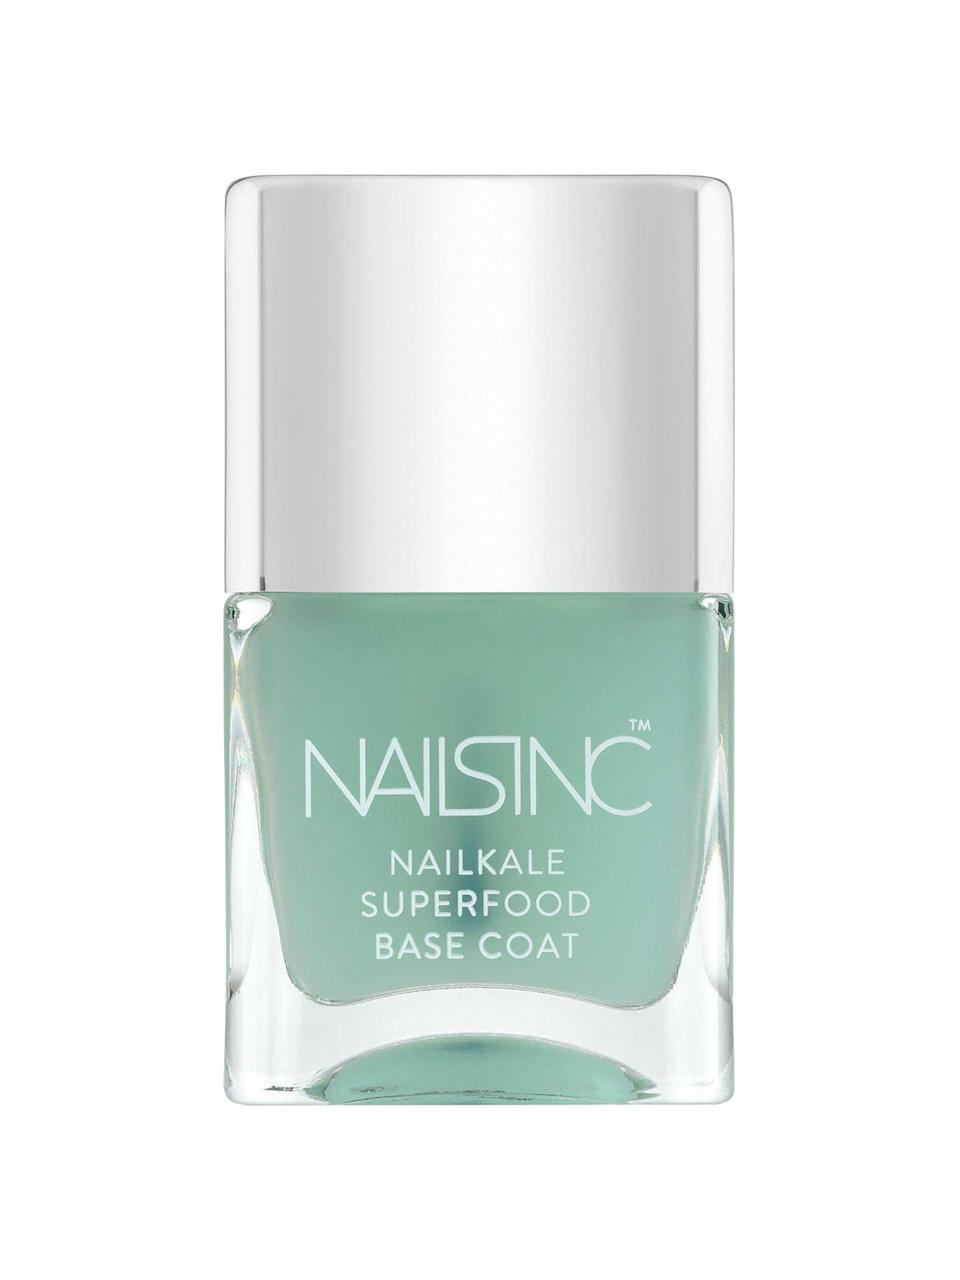 "<p>This <a href=""https://www.refinery29.com/en-us/glitter-nail-polish#slide-7"" rel=""nofollow noopener"" target=""_blank"" data-ylk=""slk:Nails Inc"" class=""link rapid-noclick-resp"">Nails Inc</a> base coat — infused with keratin, aloe, vitamin E, and, of course, kale extract — is a $15 investment in <a href=""https://www.refinery29.com/en-us/best-nail-strengthener"" rel=""nofollow noopener"" target=""_blank"" data-ylk=""slk:hard, glossy nails"" class=""link rapid-noclick-resp"">hard, glossy nails</a> for however long it takes you to drain the bottle. There's a reason the Sephora landing page has more than 150 glowing reviews.</p><br><br><strong>Nails Inc.</strong> NAILKALE - Superfood Base Coat, $15, available at <a href=""https://www.sephora.com/product/nailkale-superfood-base-coat-P388616?lang=en#locklink"" rel=""nofollow noopener"" target=""_blank"" data-ylk=""slk:Sephora"" class=""link rapid-noclick-resp"">Sephora</a>"